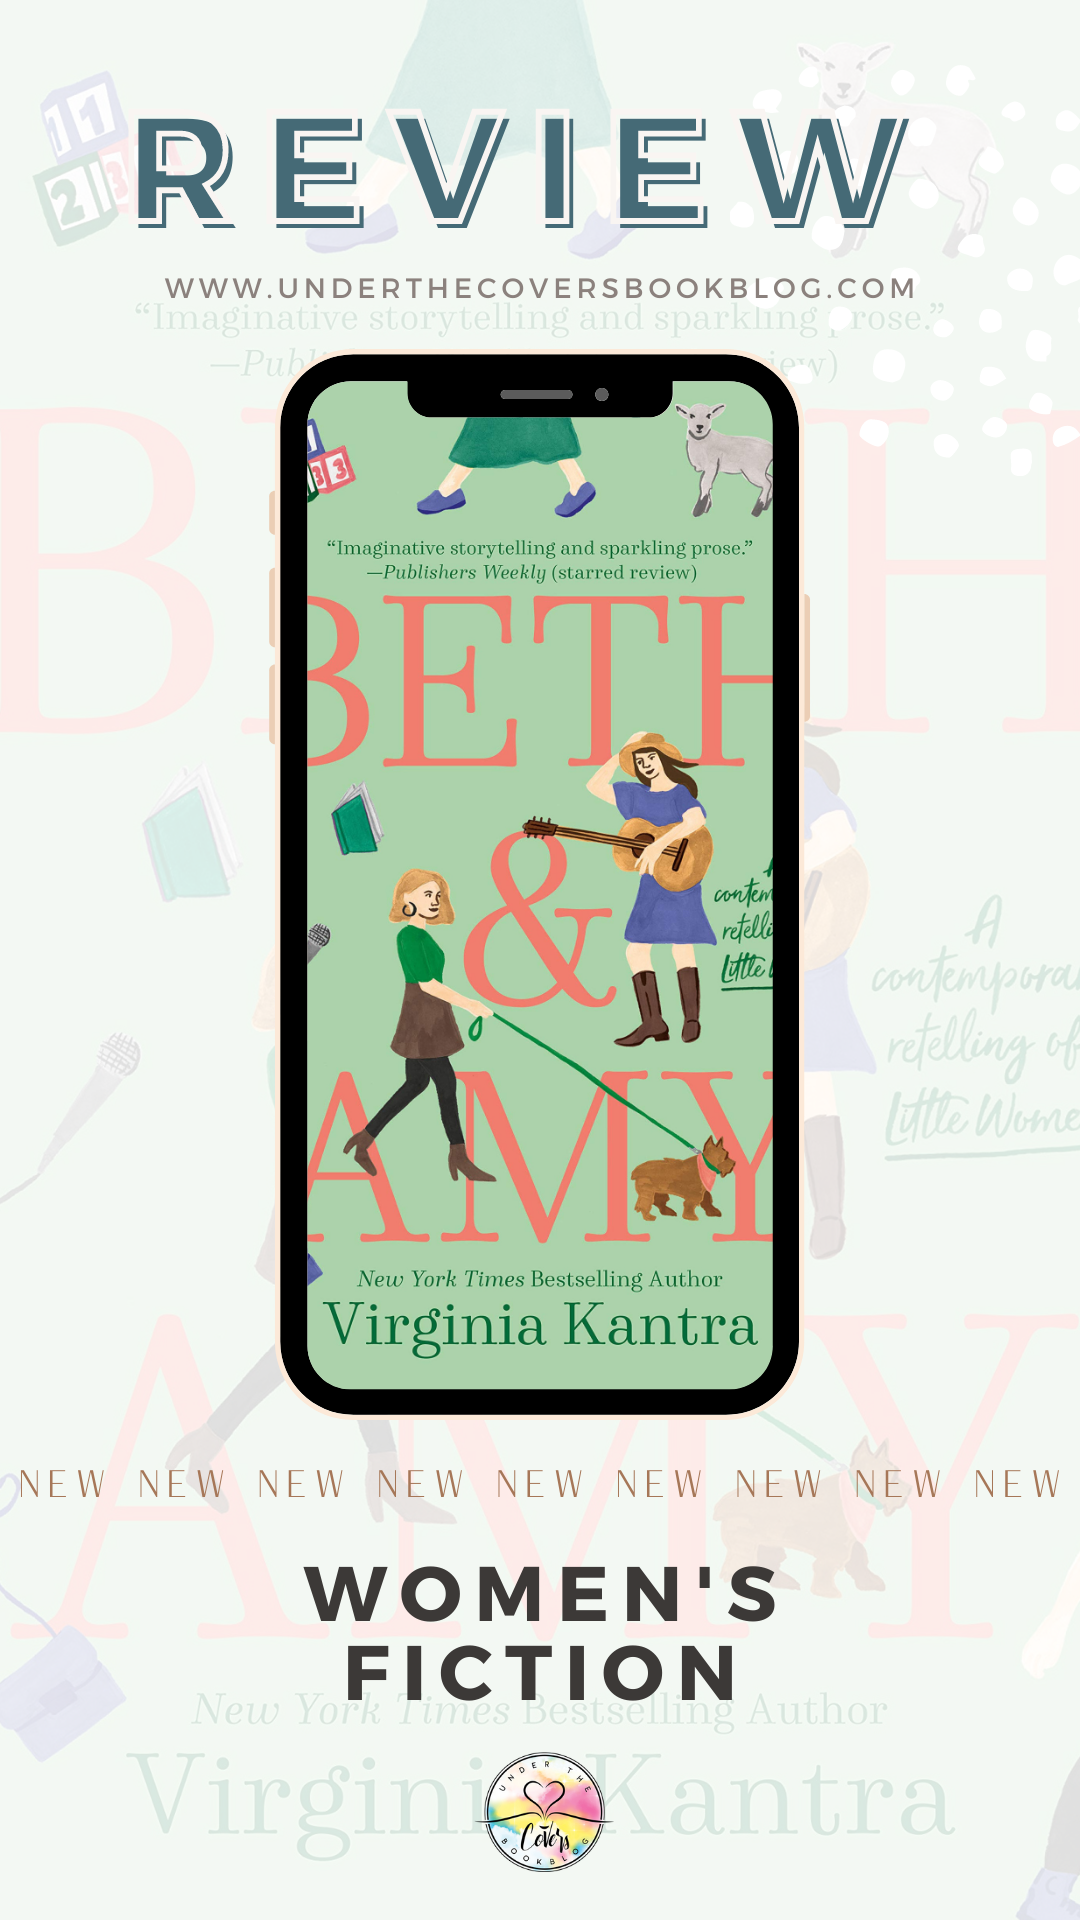 ARC Review: Beth & Amy by Virginia Kantra